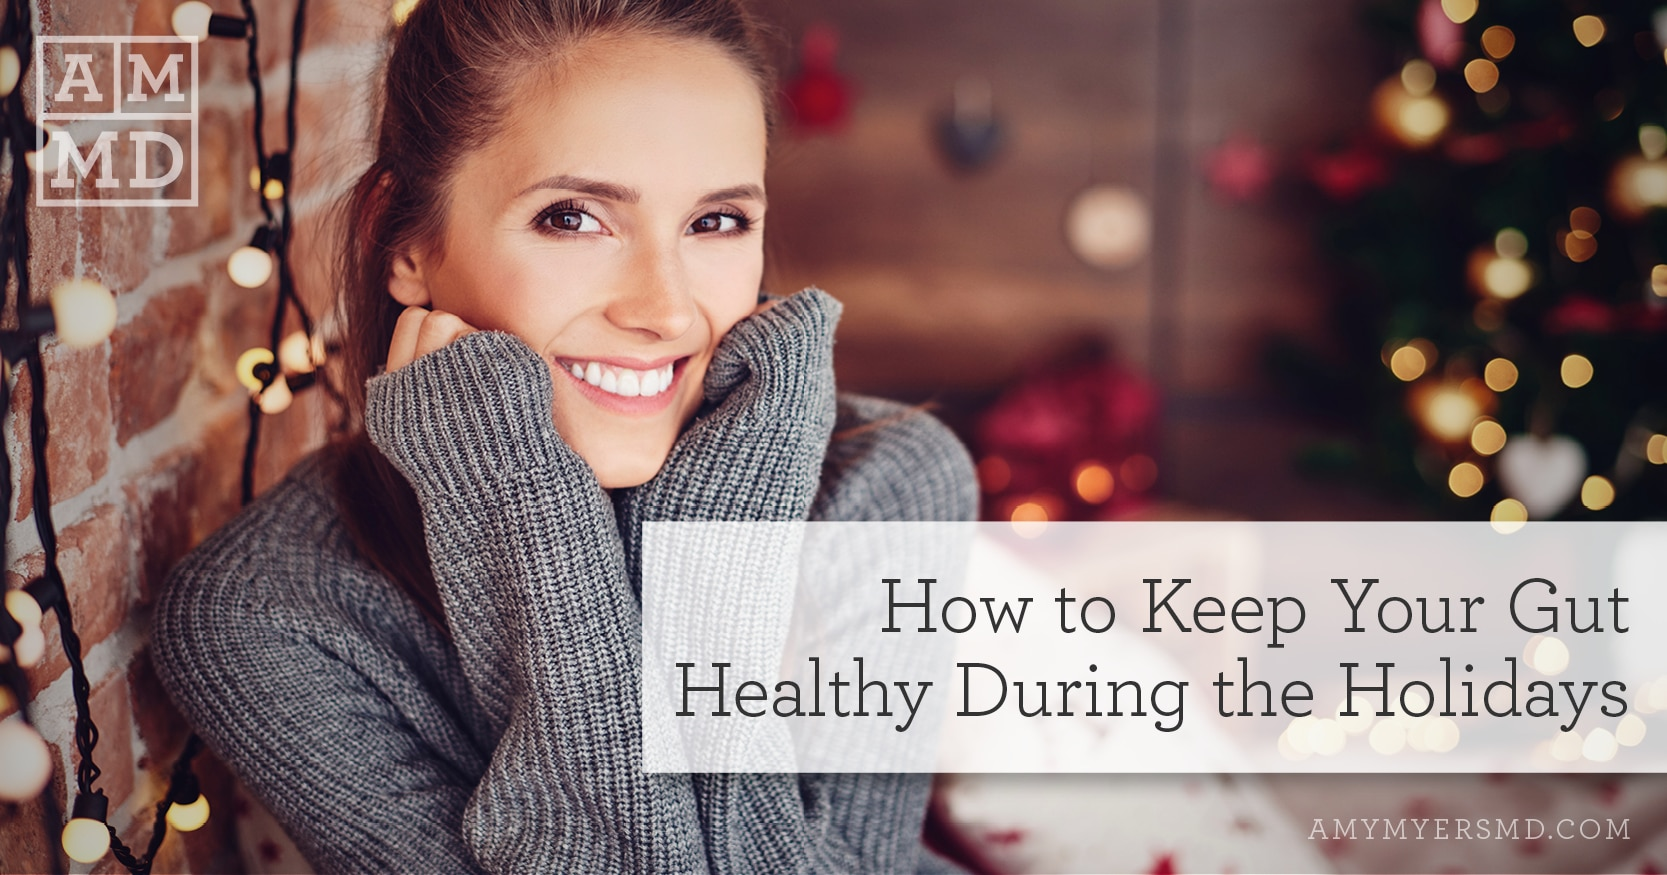 How to Keep Your Gut Healthy During the Holidays - Happy Woman - Featured Image - Amy Myers MD